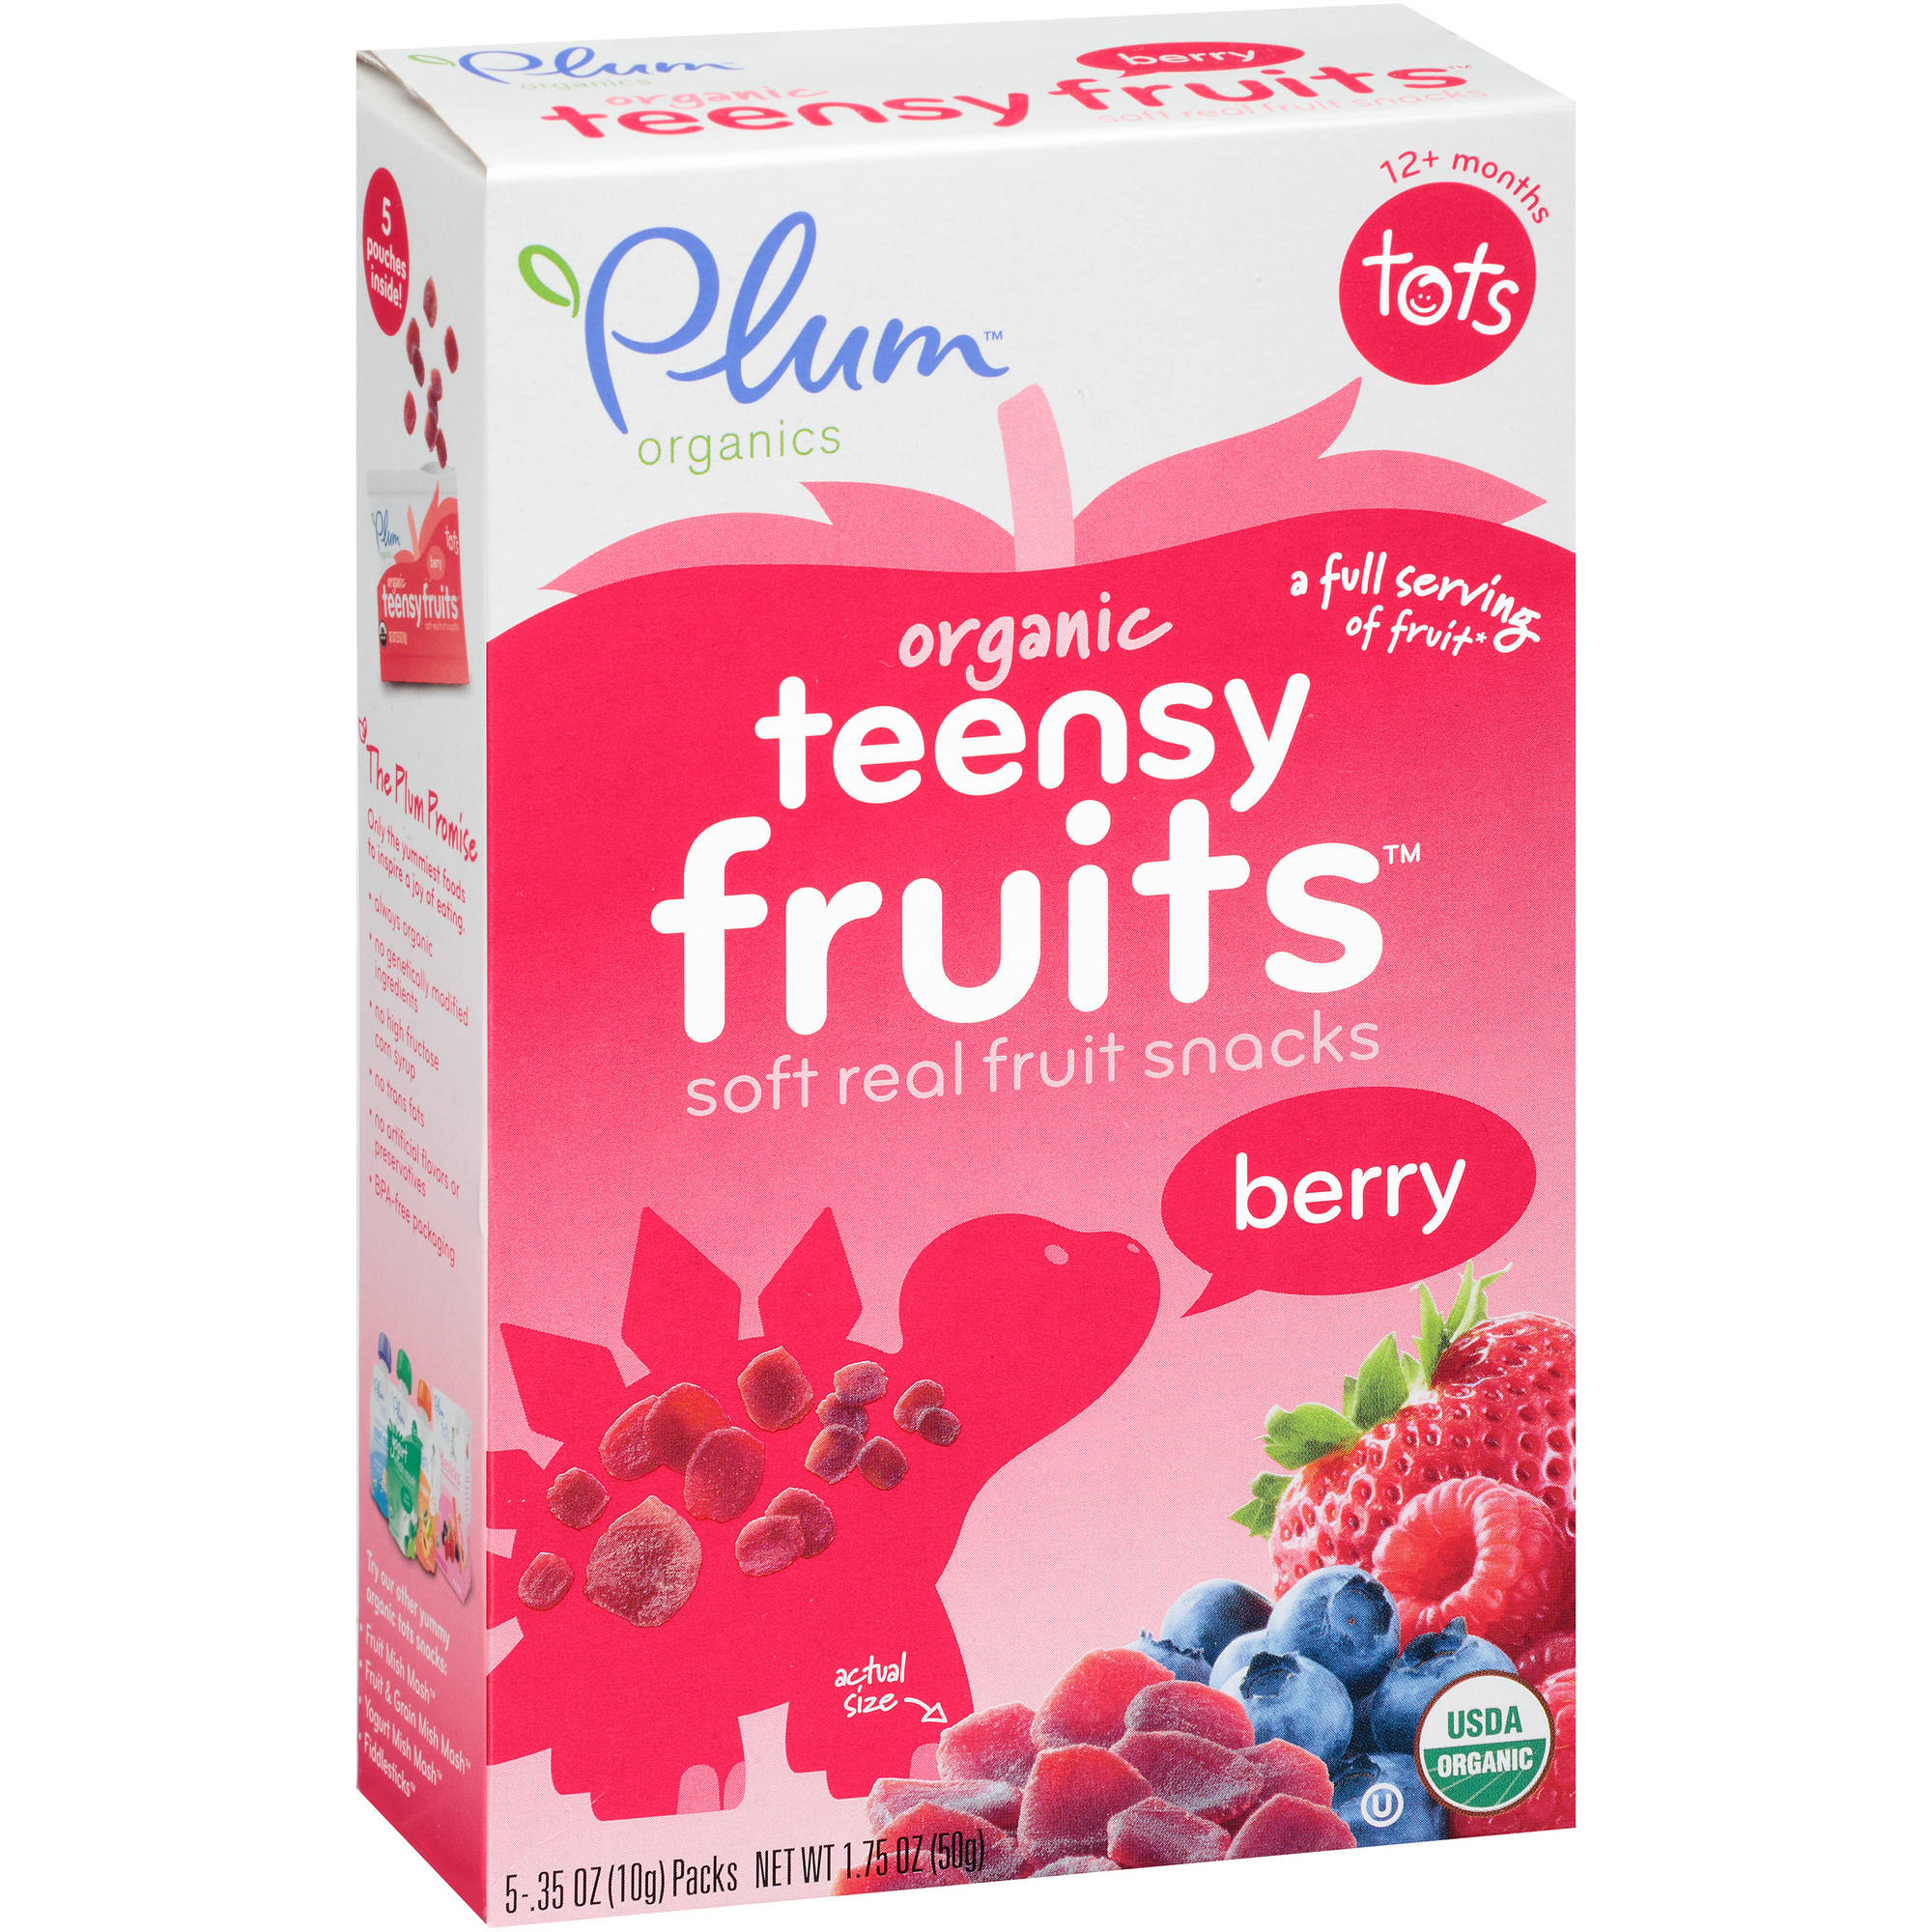 Plum Organics Tots Teensy Fruits Berry Soft Real Fruit Snacks, .35 oz, 5 count, (Pack of 8)